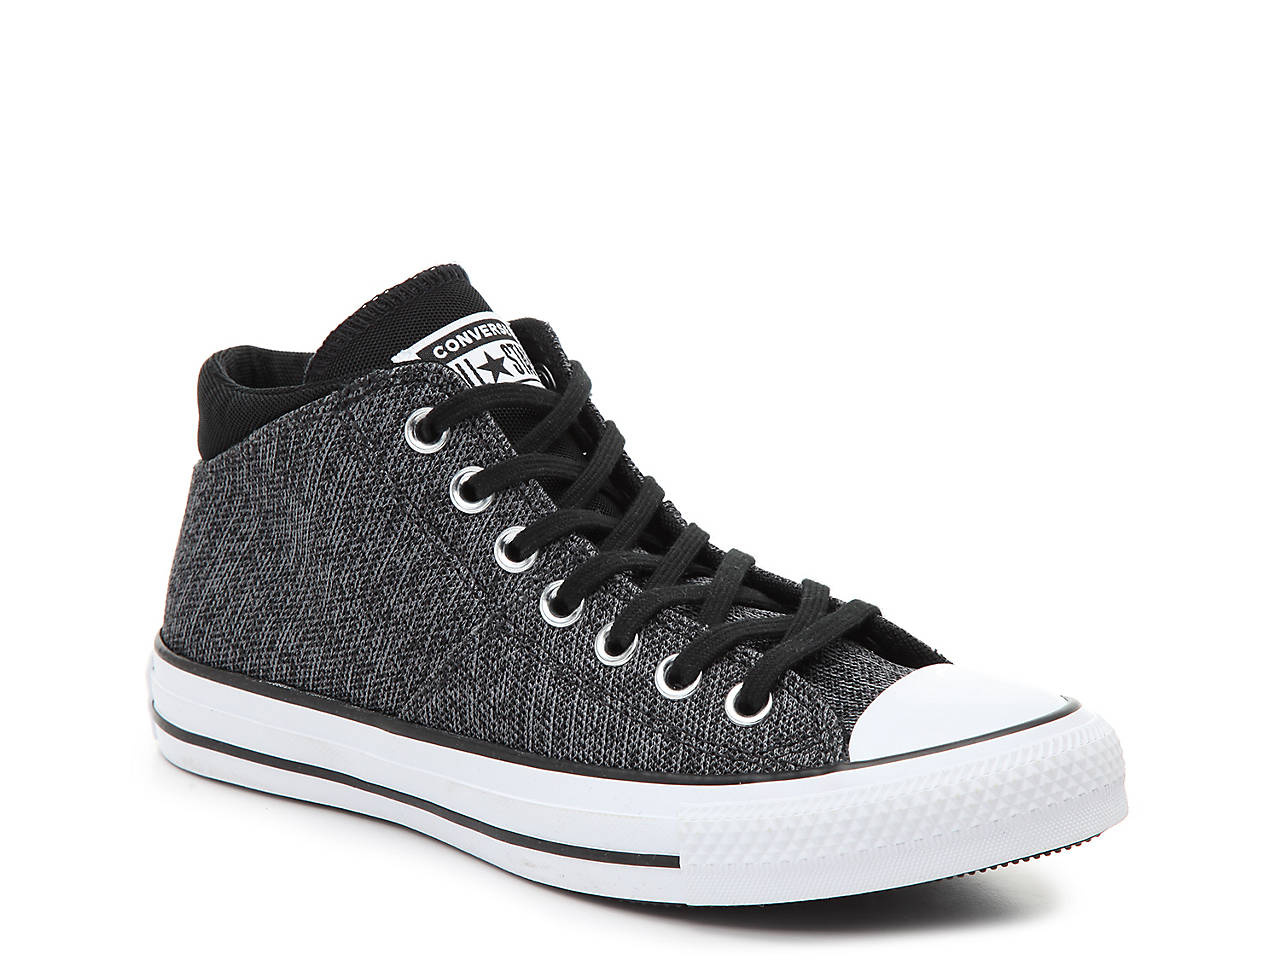 Converse Chuck Taylor All Star Madison Mid-Top Sneaker - Women s Women s  Shoes  c989f0807